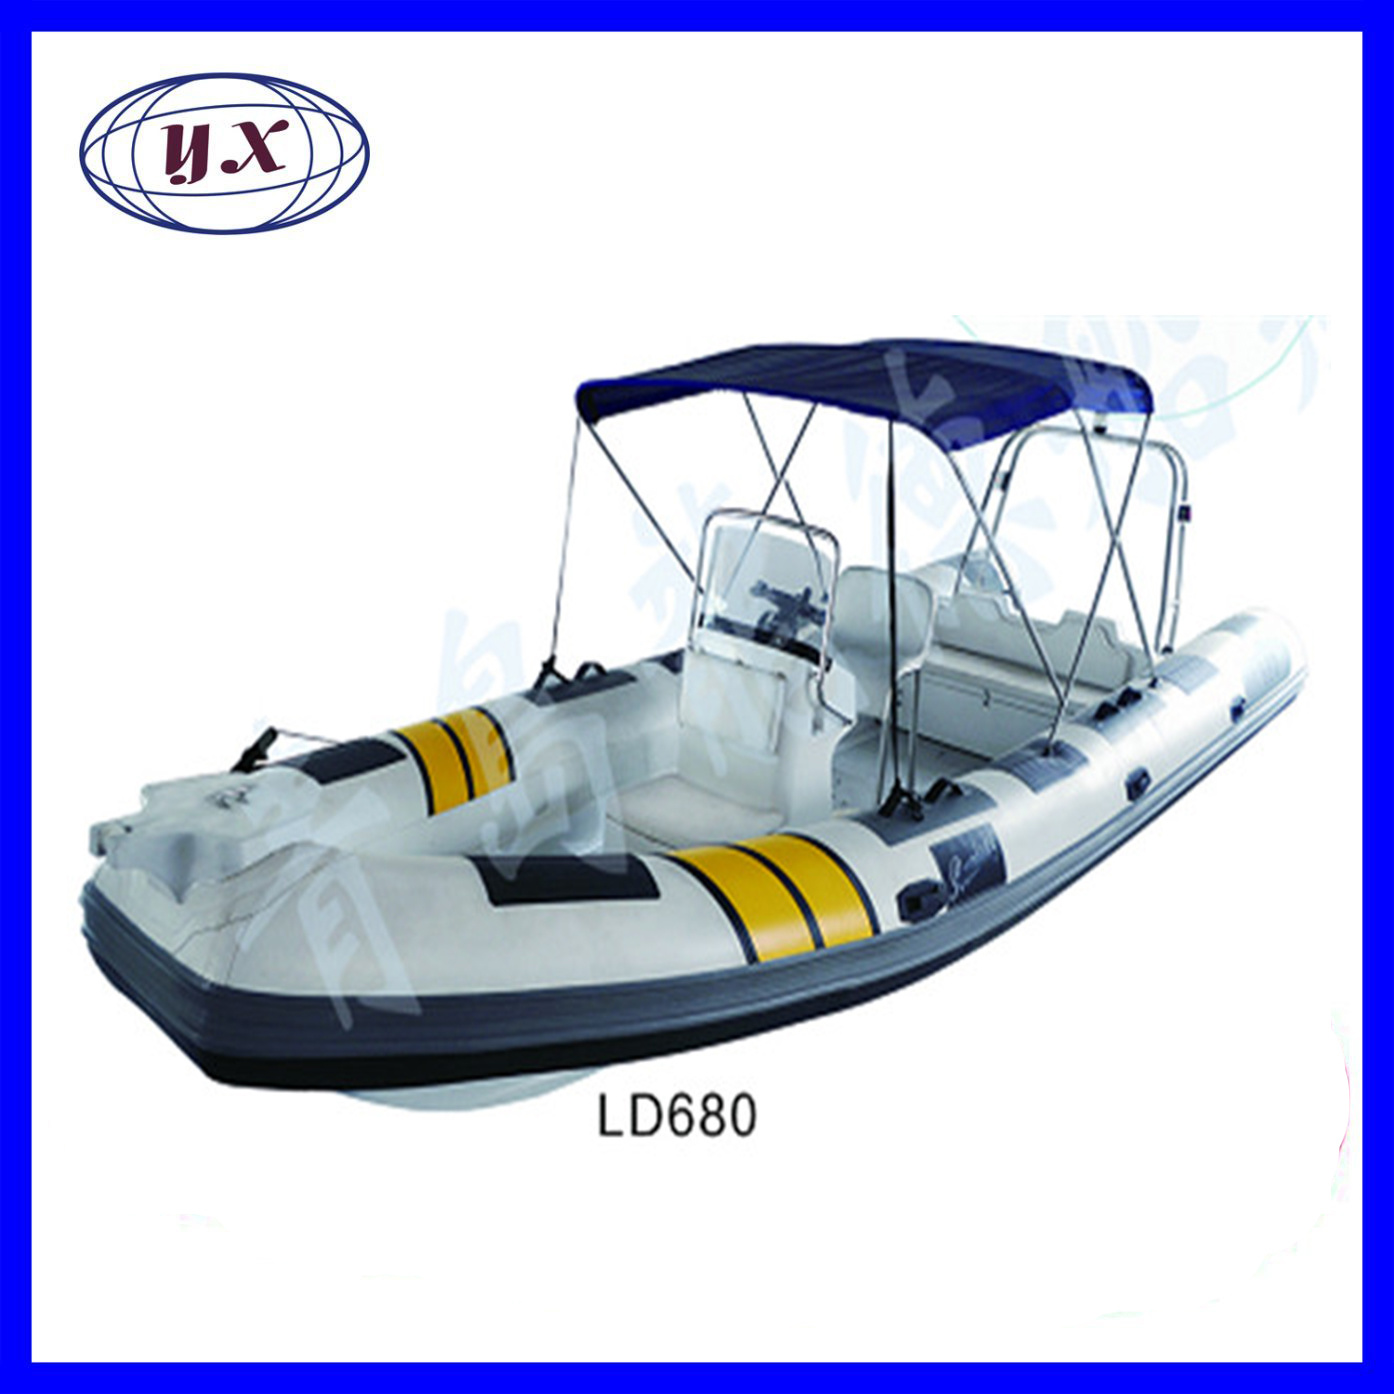 [Hot Item] Ld680/680mm/ISO Certificate Hypalon 3 Person Inflatable Jet  Kayak with Paddles